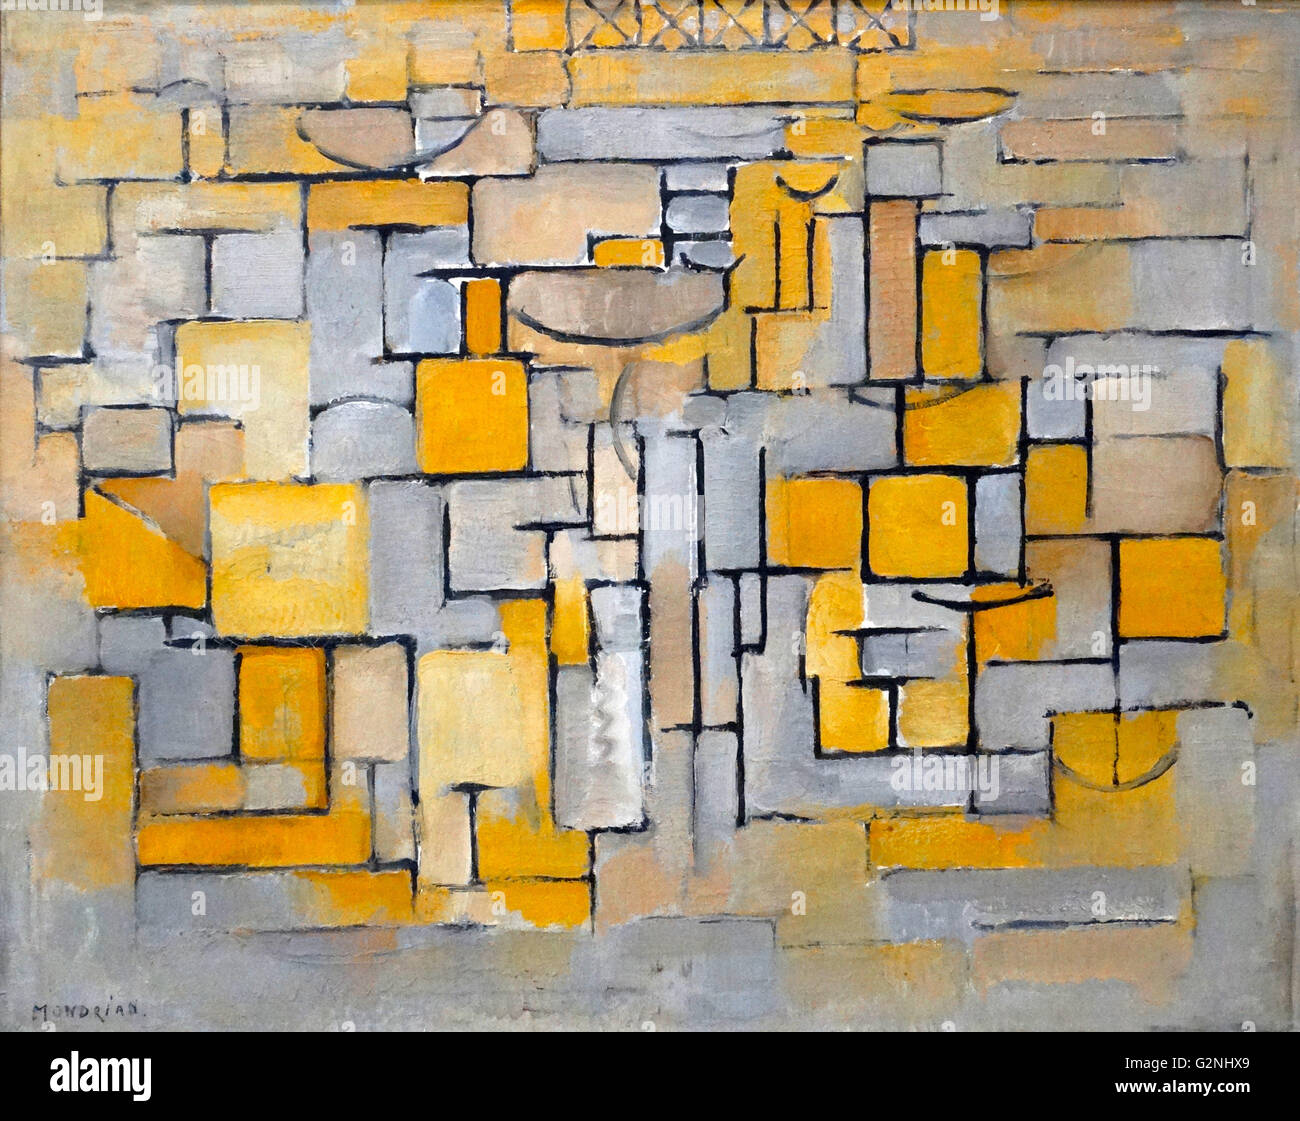 Painting No 8 by Piet Mondrian Stock Photo: 104966577 - Alamy